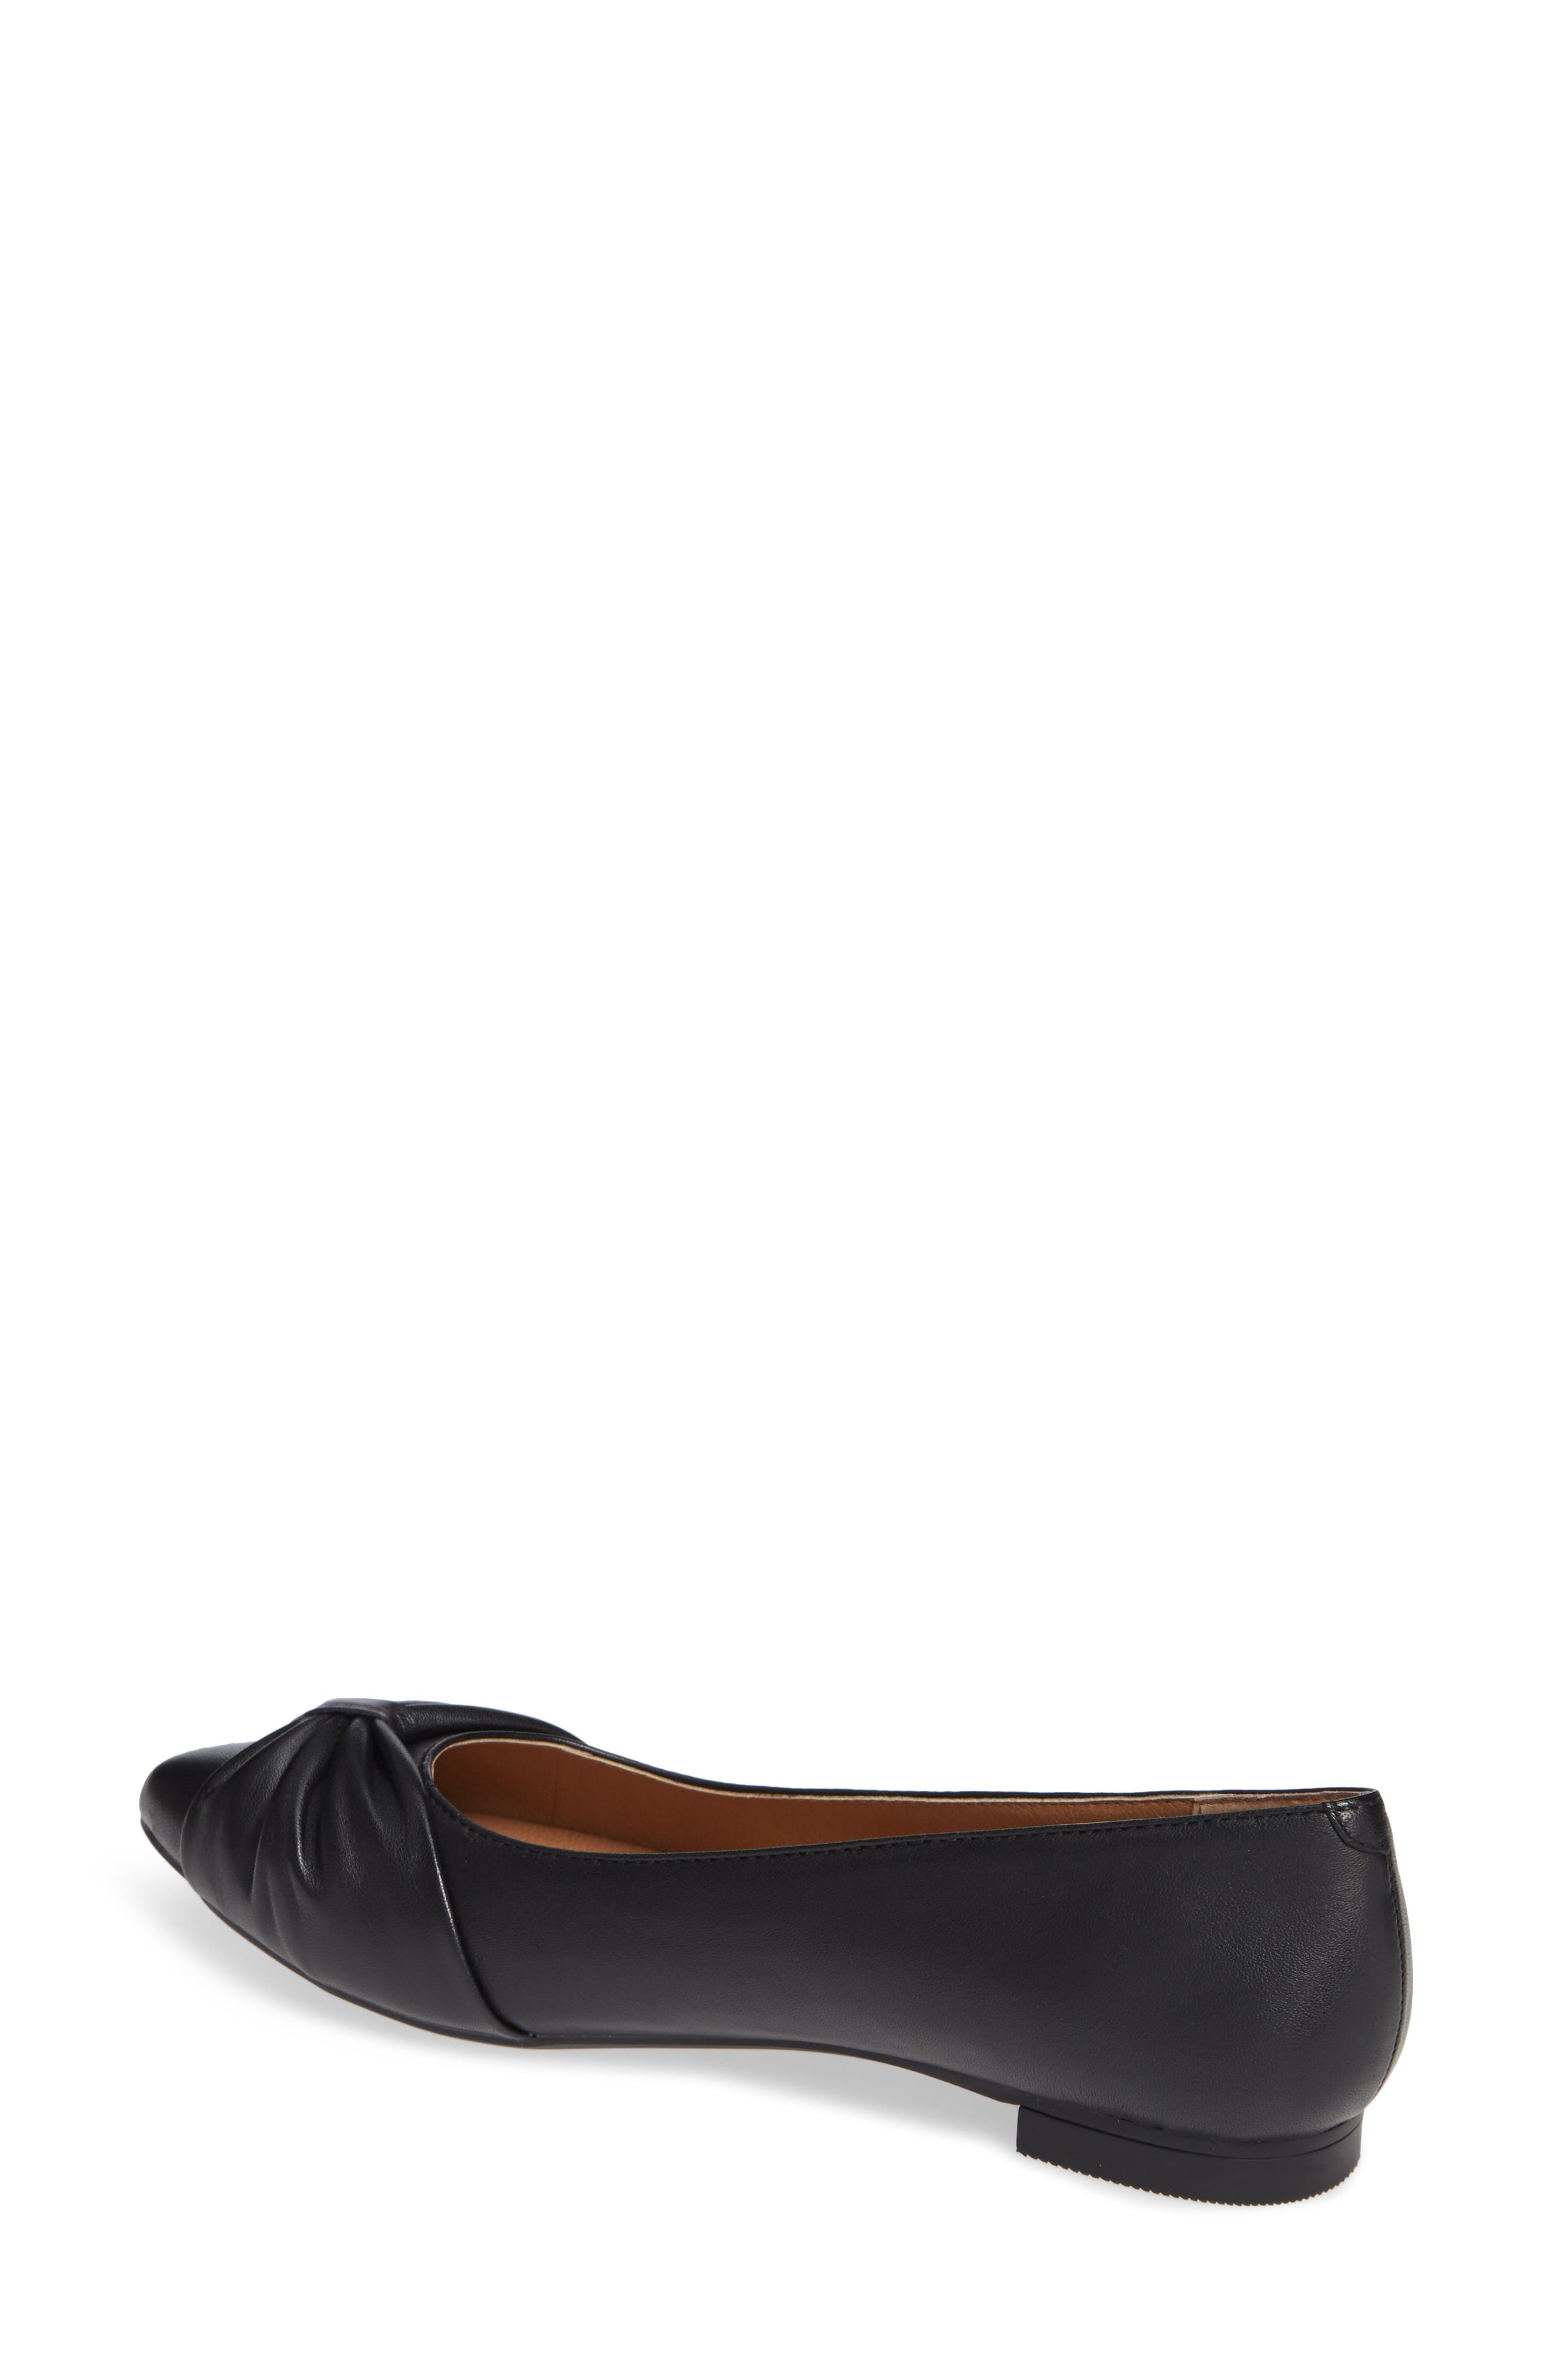 Gramercy Pointy Toe Flat,                             Alternate thumbnail 2, color,                             001